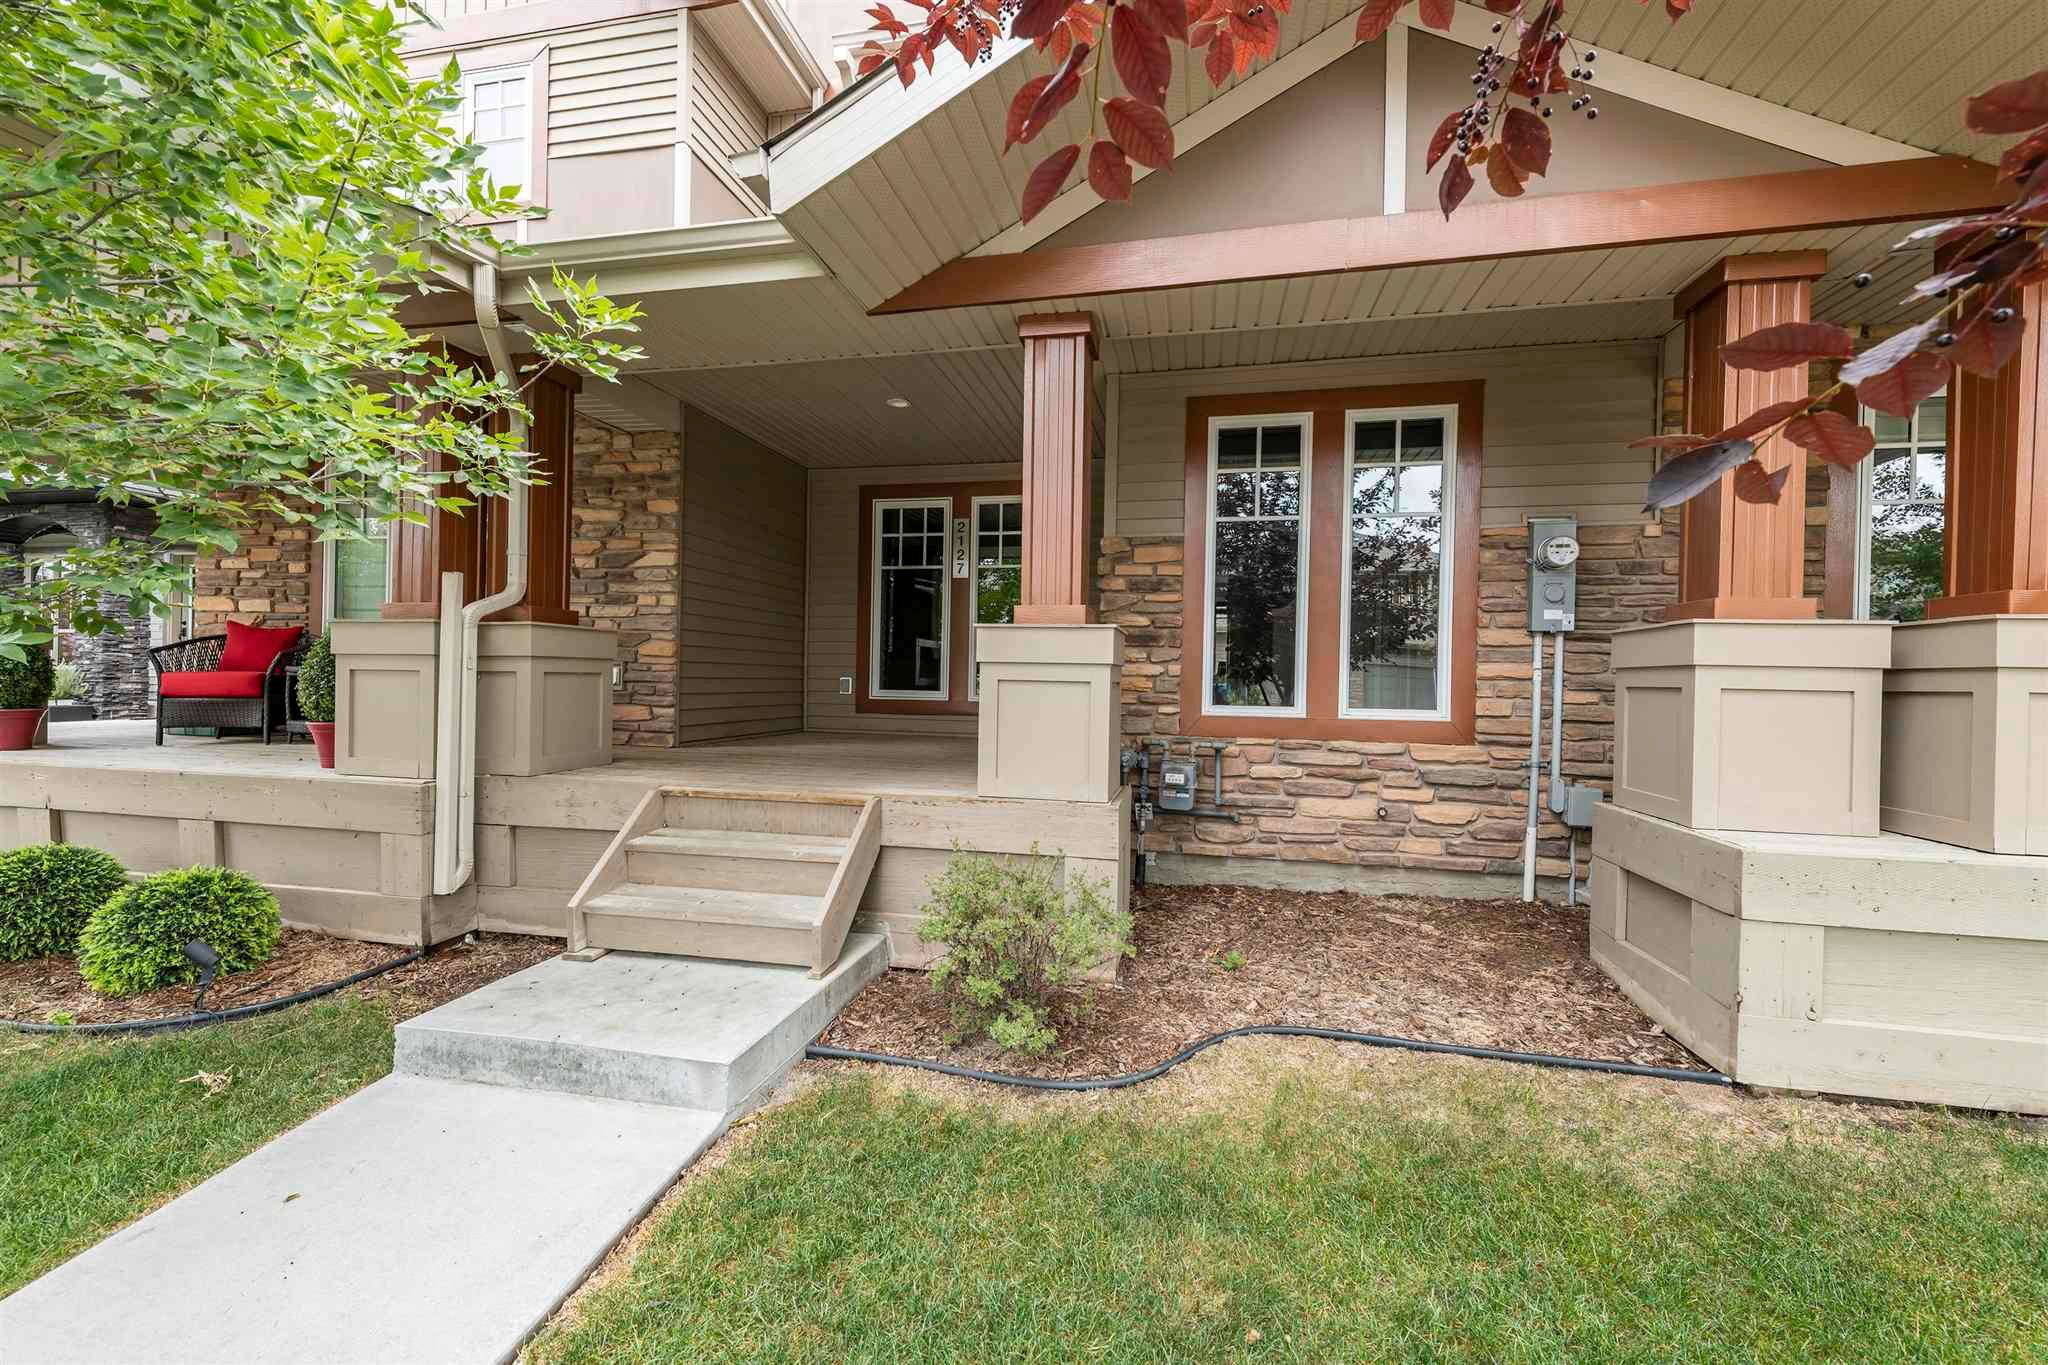 Main Photo: 2127 AUSTIN Link in Edmonton: Zone 56 Attached Home for sale : MLS®# E4255544